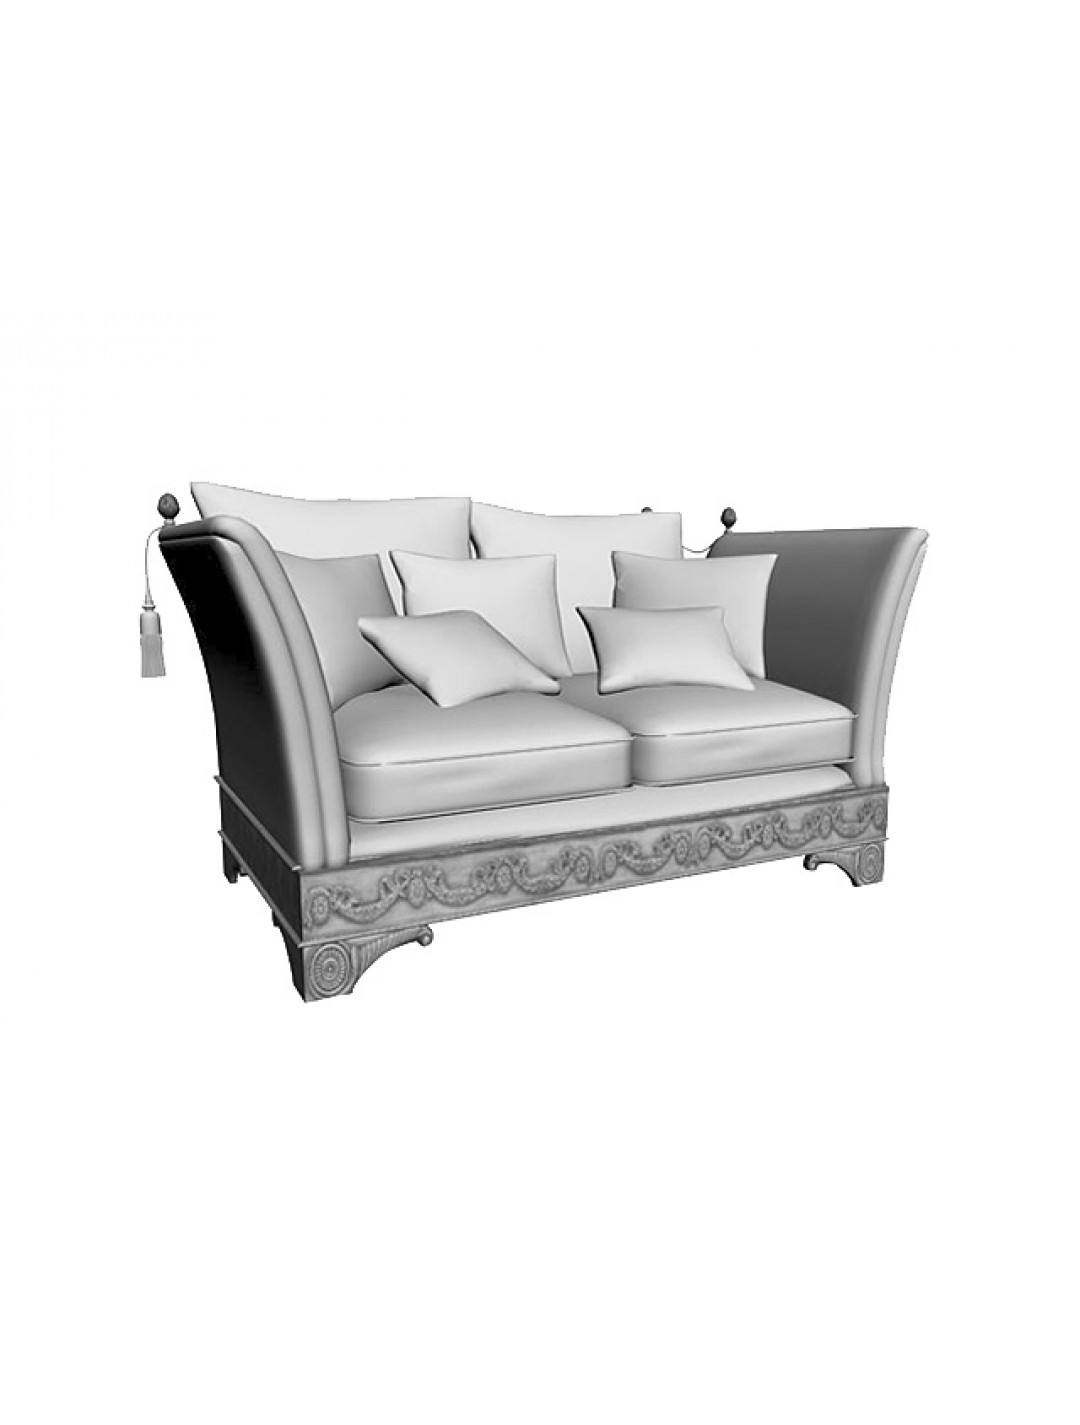 LORENA 2-SEATER SOFA, THREE 50*50 CUSHIONS INCLUDED, C.O.M.